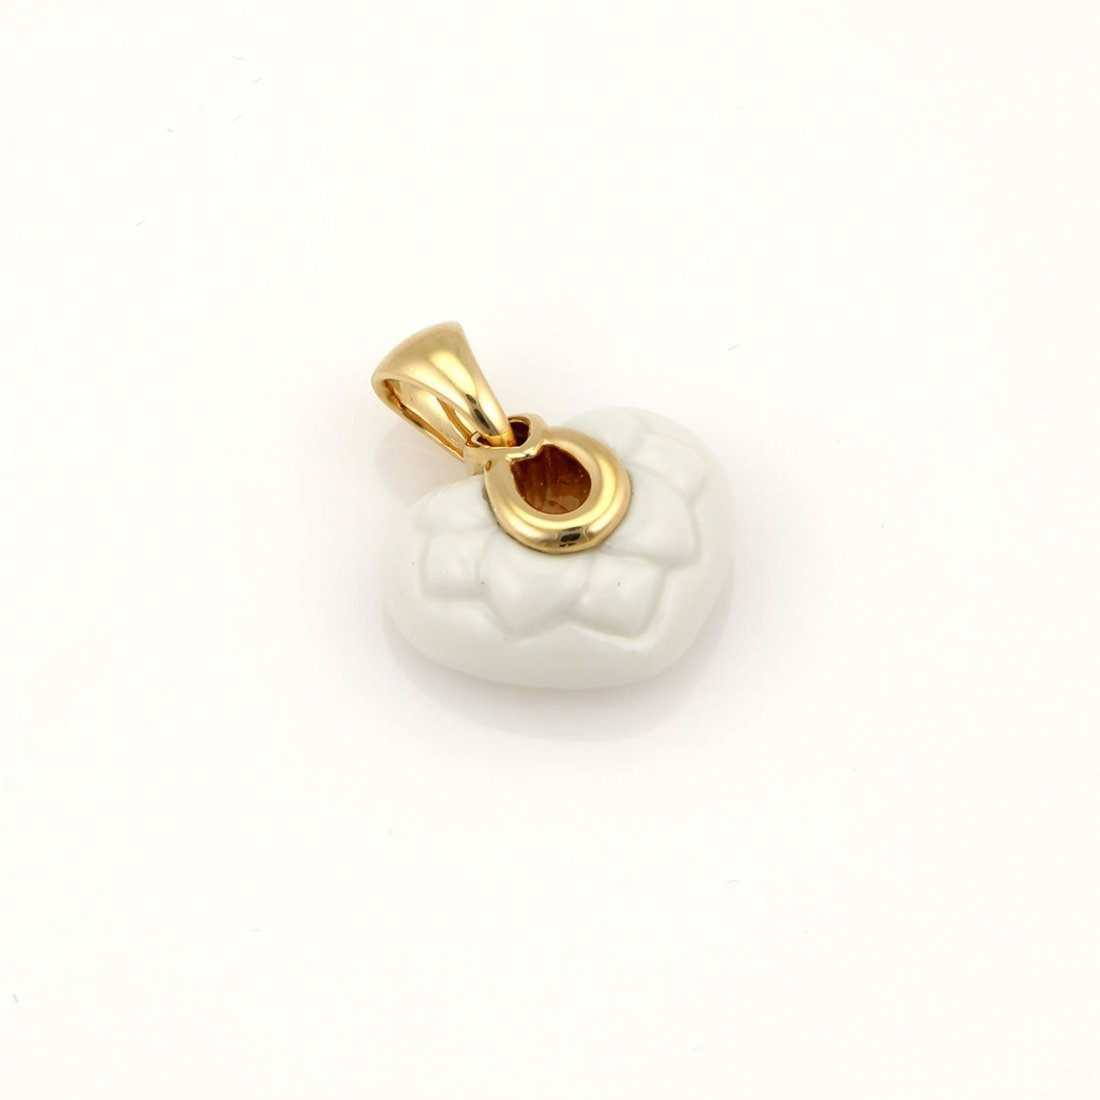 Bvlgari Bulgari 18K Yellow Gold White Ceramic Heart